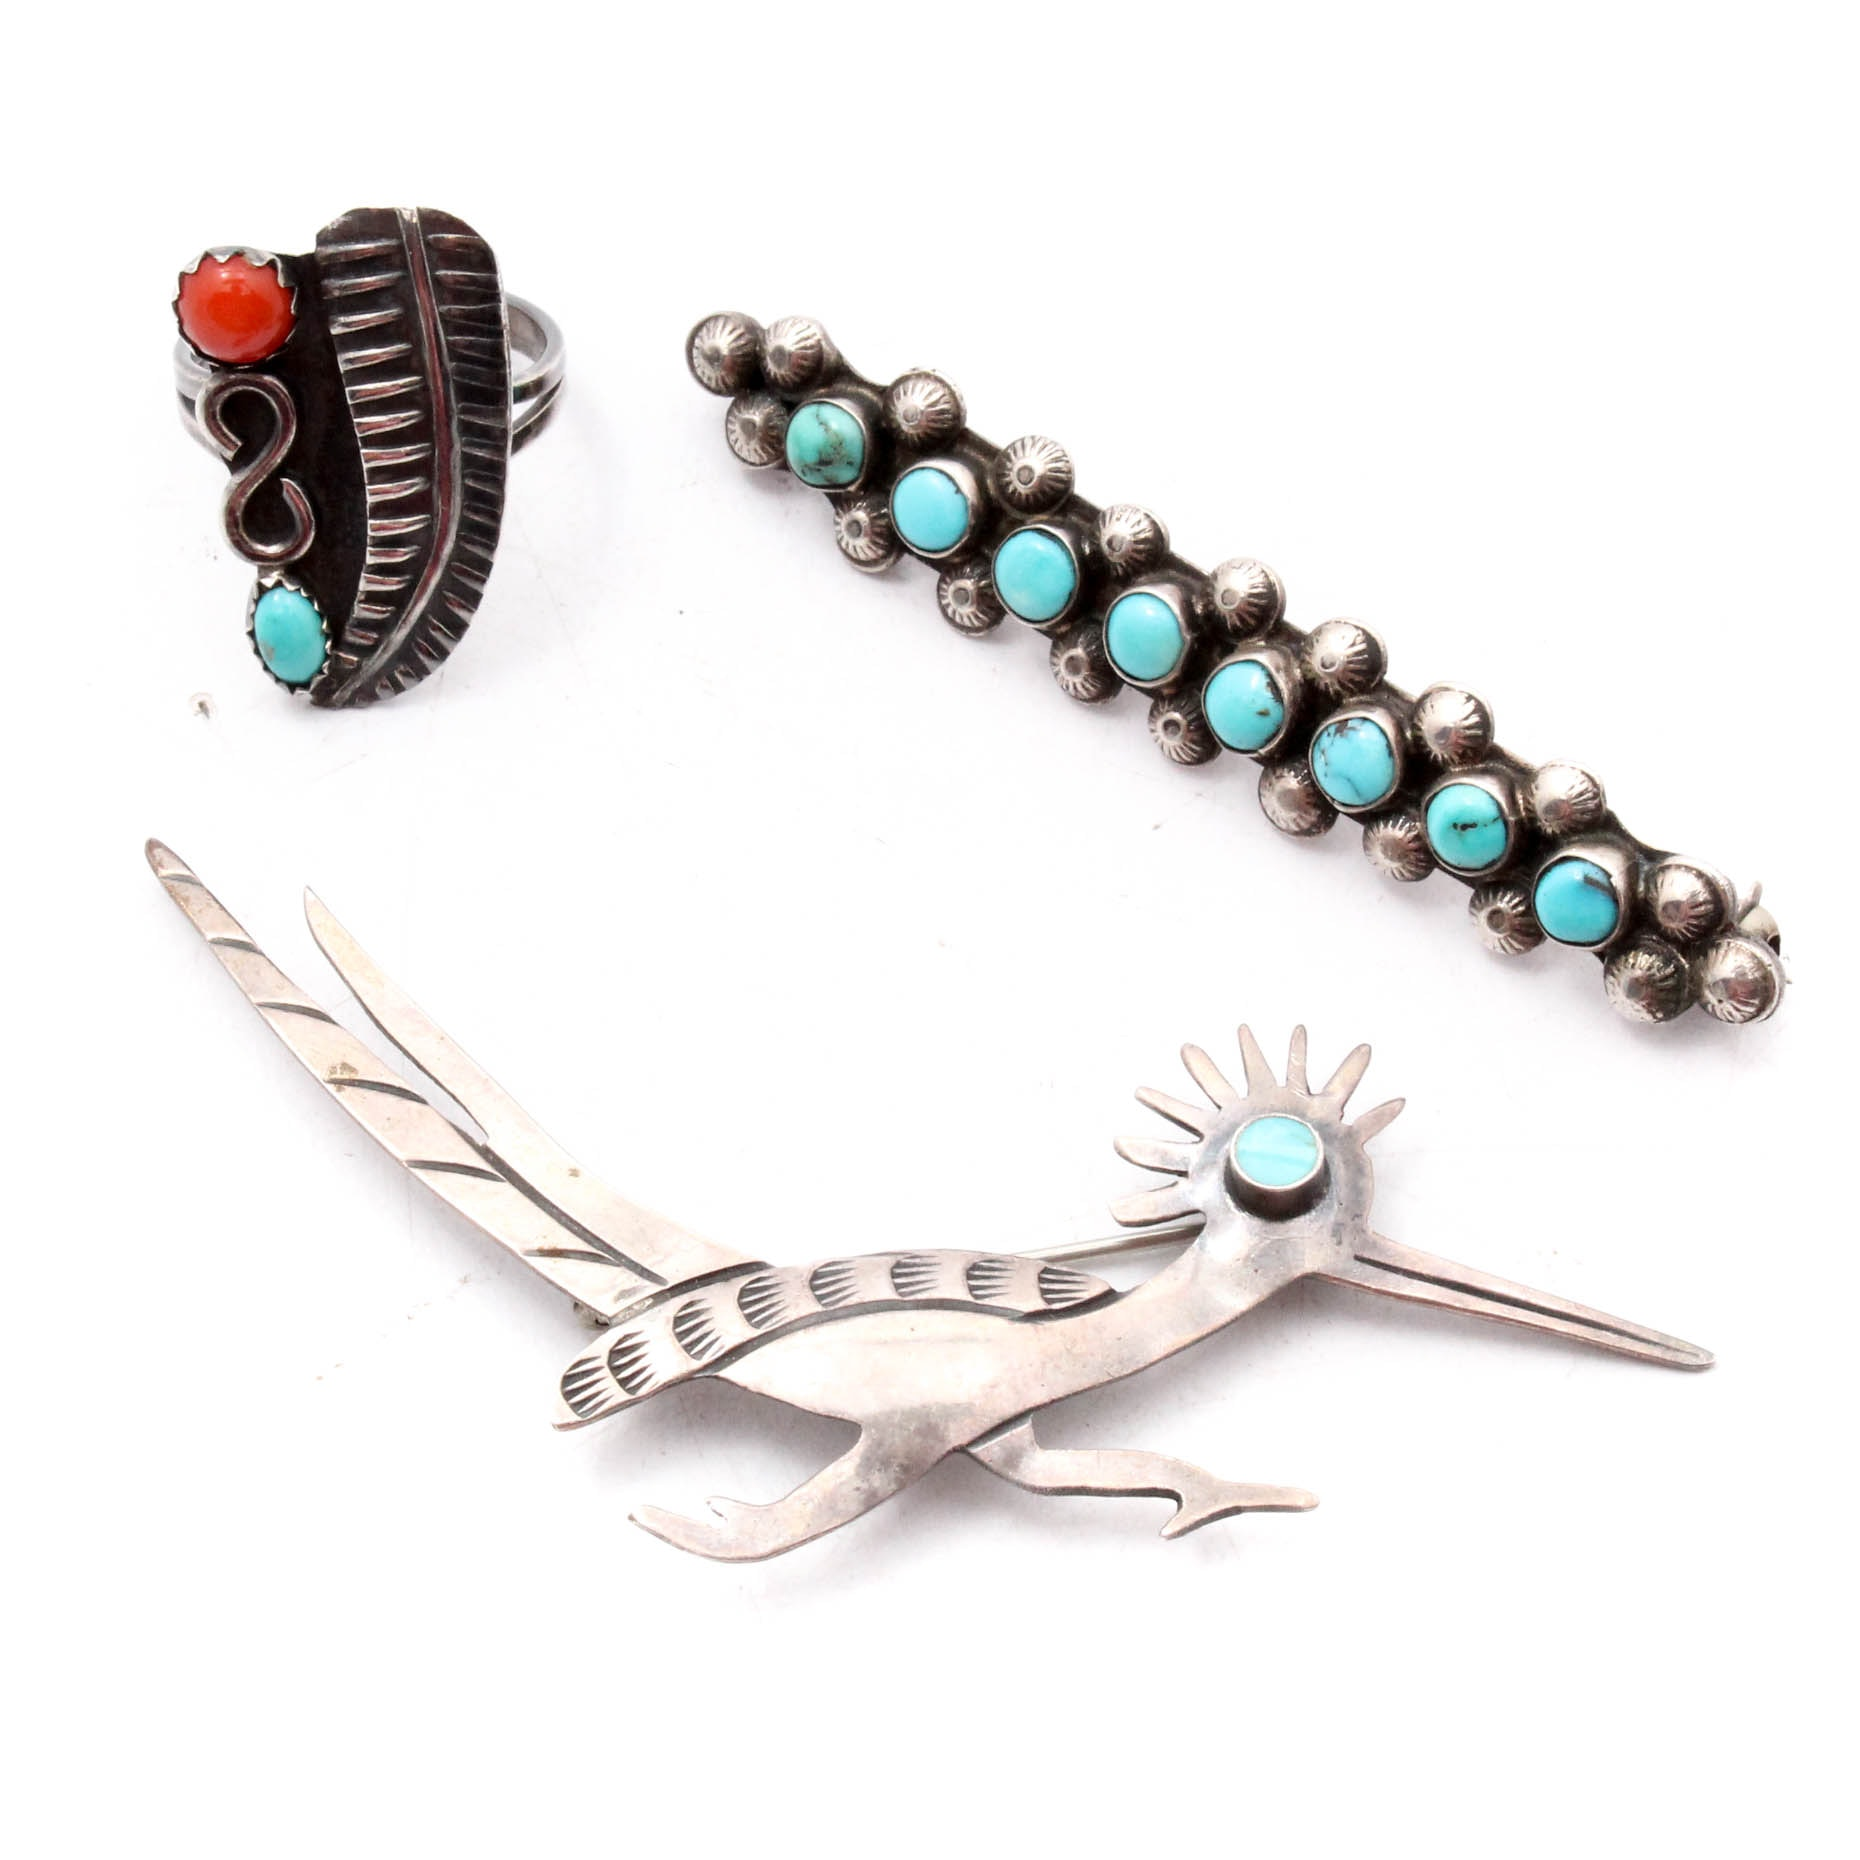 Silver Tone Dyed Turquoise and Coral Brooches and Ring